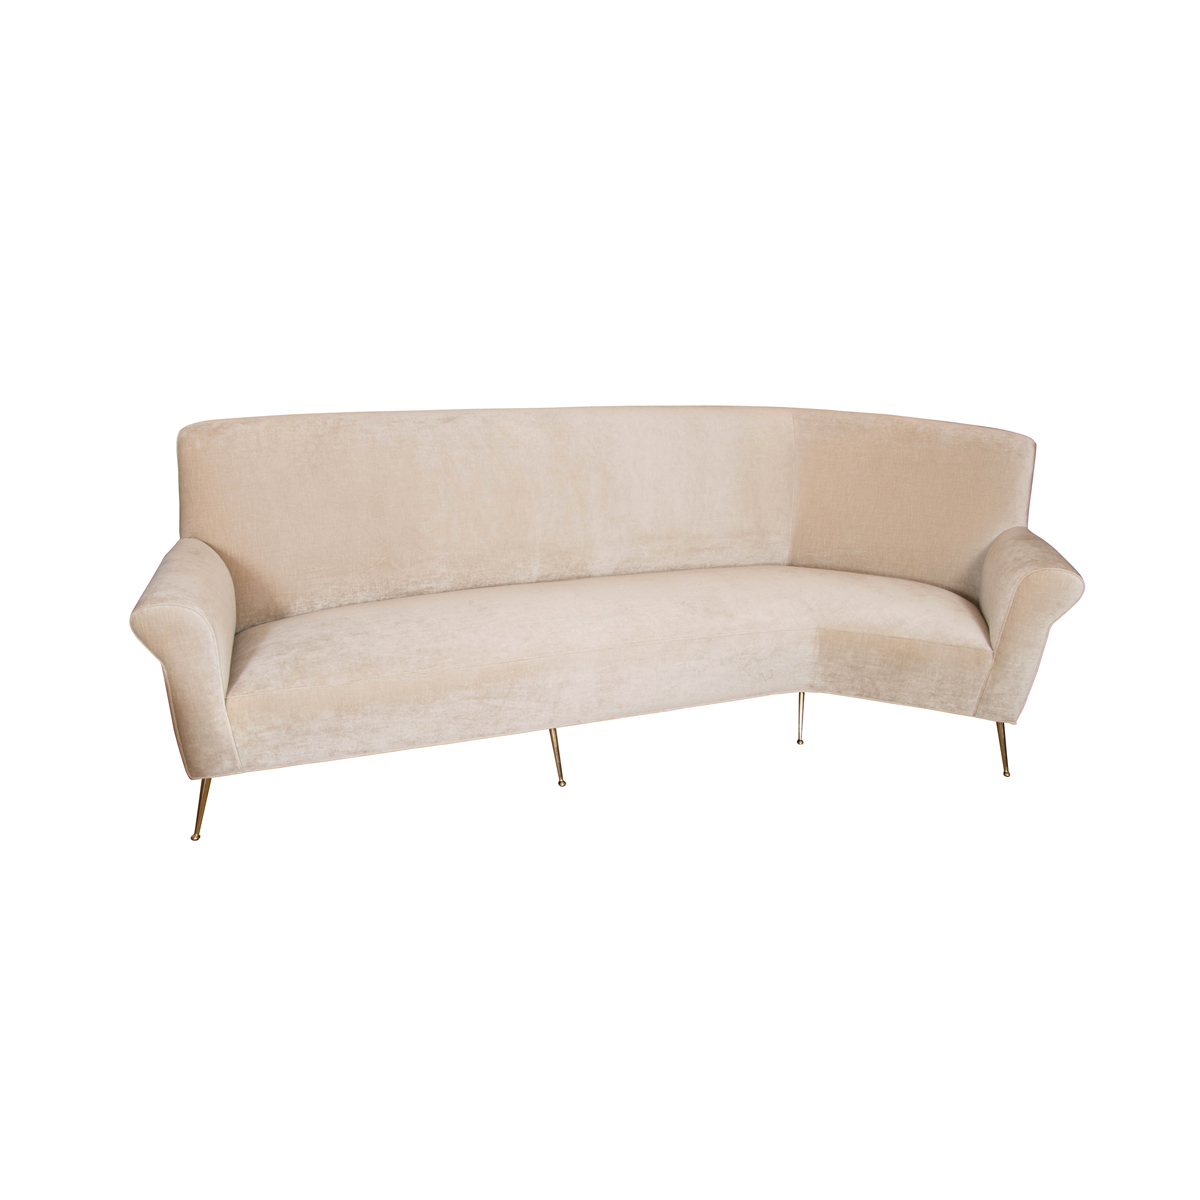 l shaped modern sofa raleigh dwr review long sofas john salibello